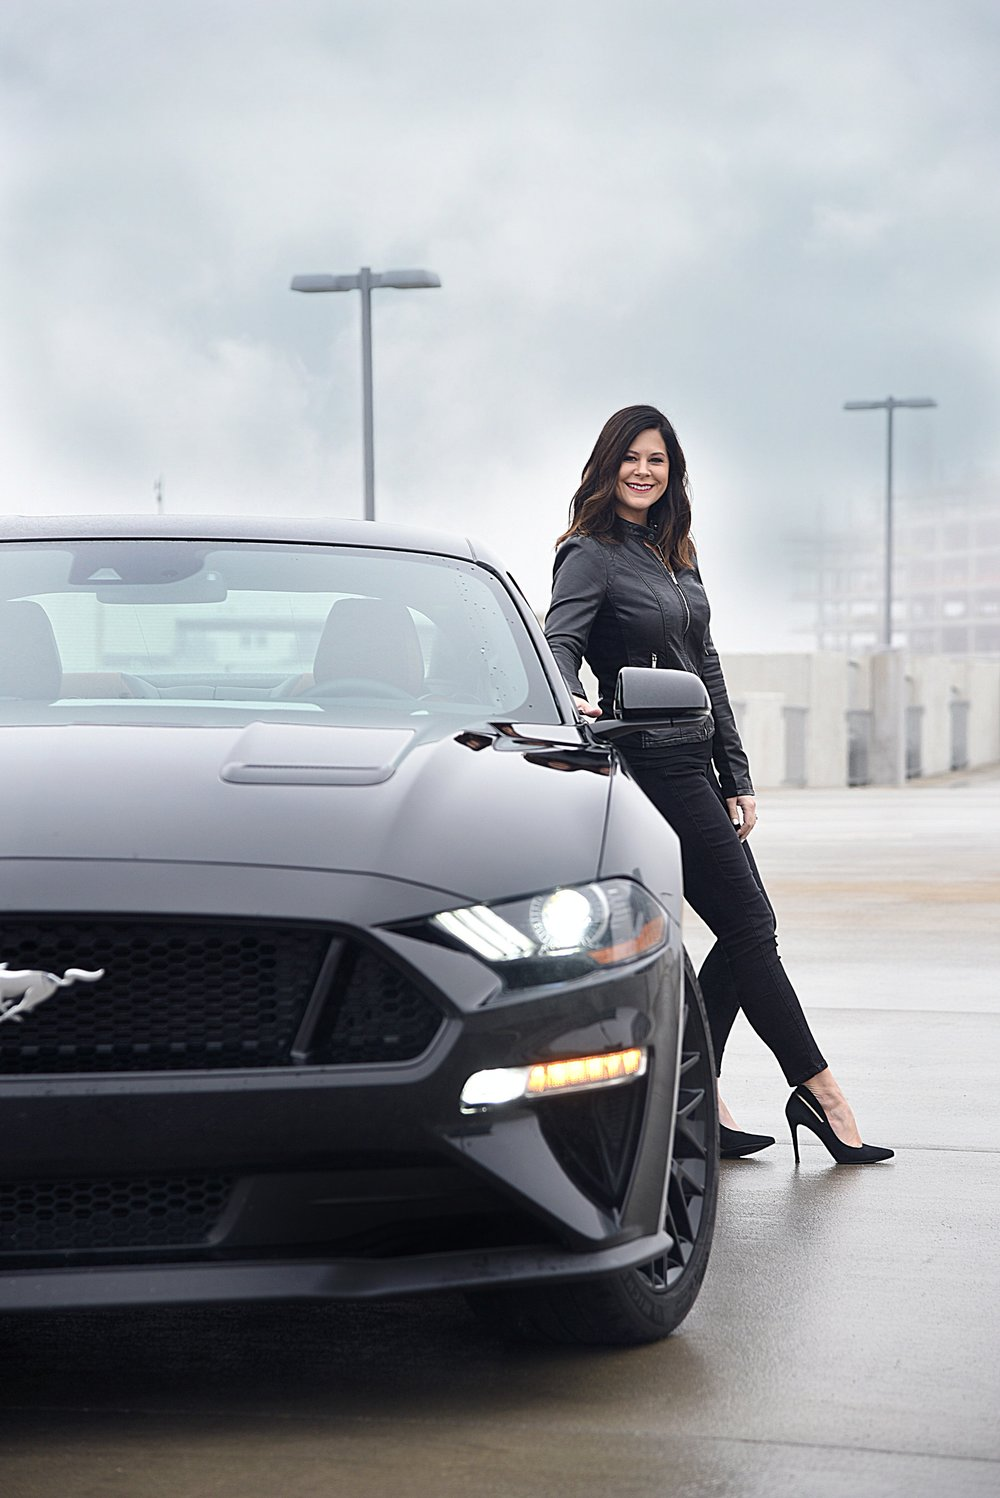 Mustang-Side-StephanieCarls.jpg